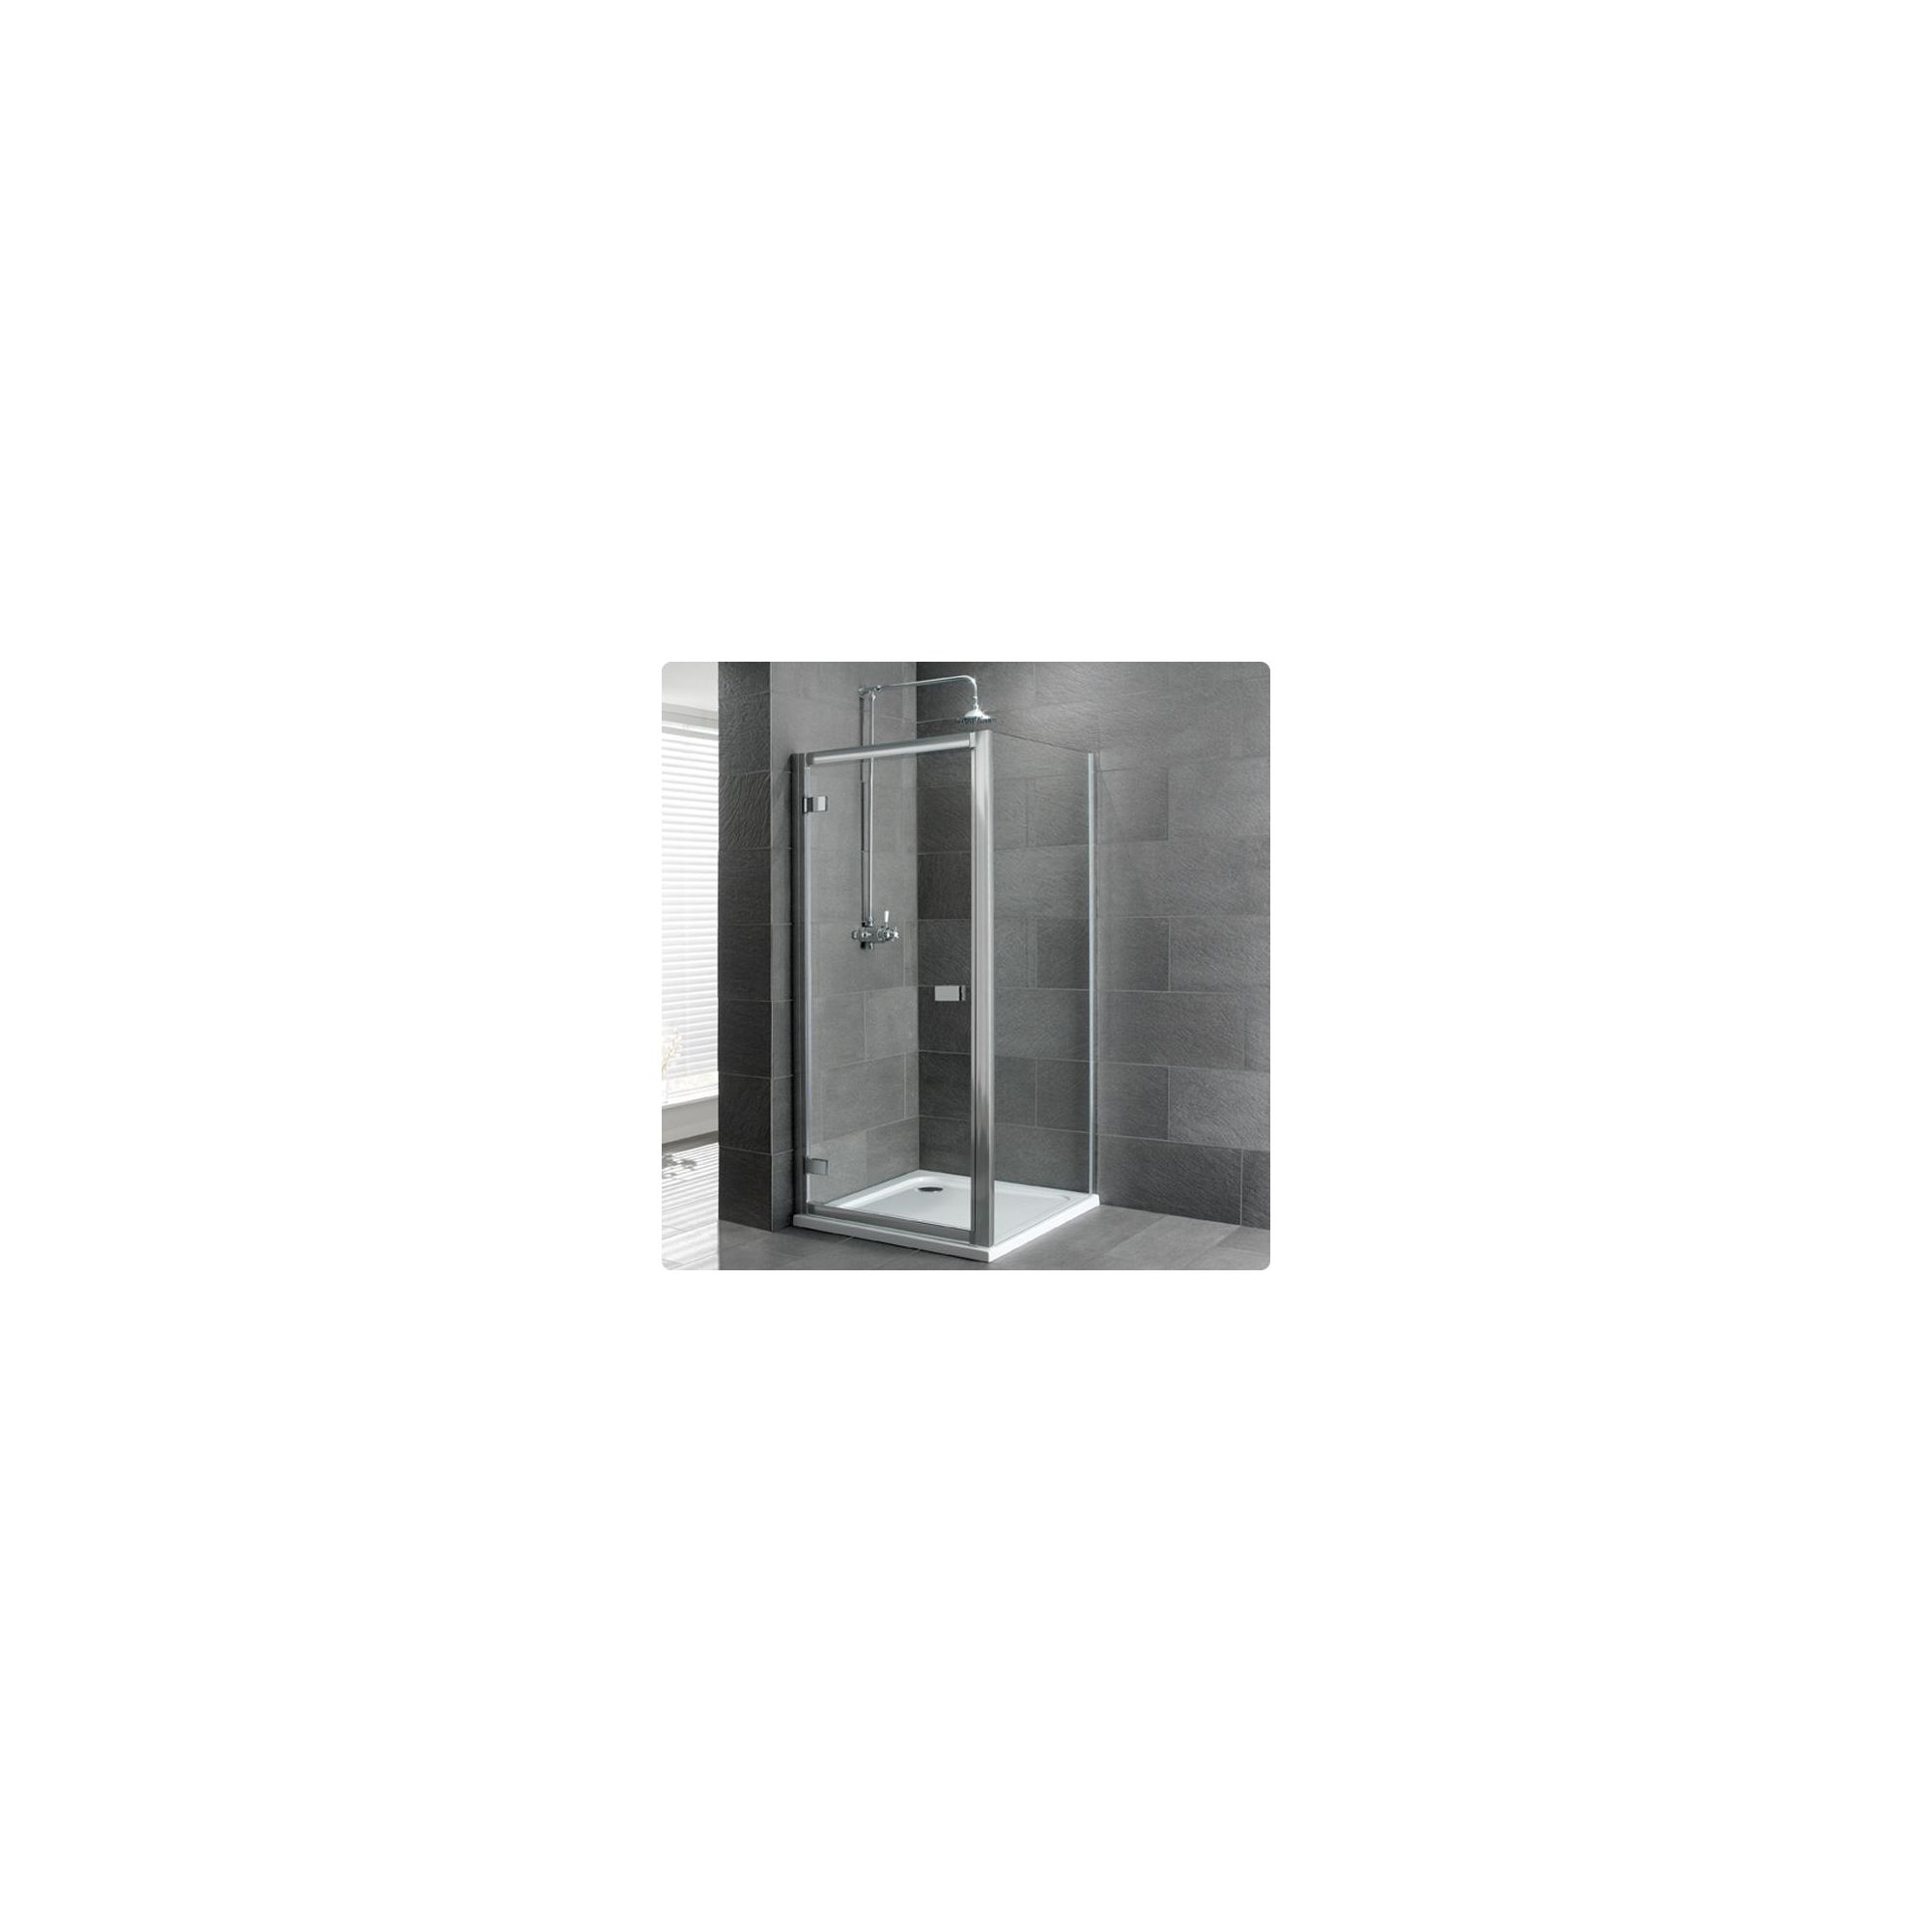 Duchy Select Silver Hinged Door Shower Enclosure, 800mm x 760mm, Standard Tray, 6mm Glass at Tesco Direct